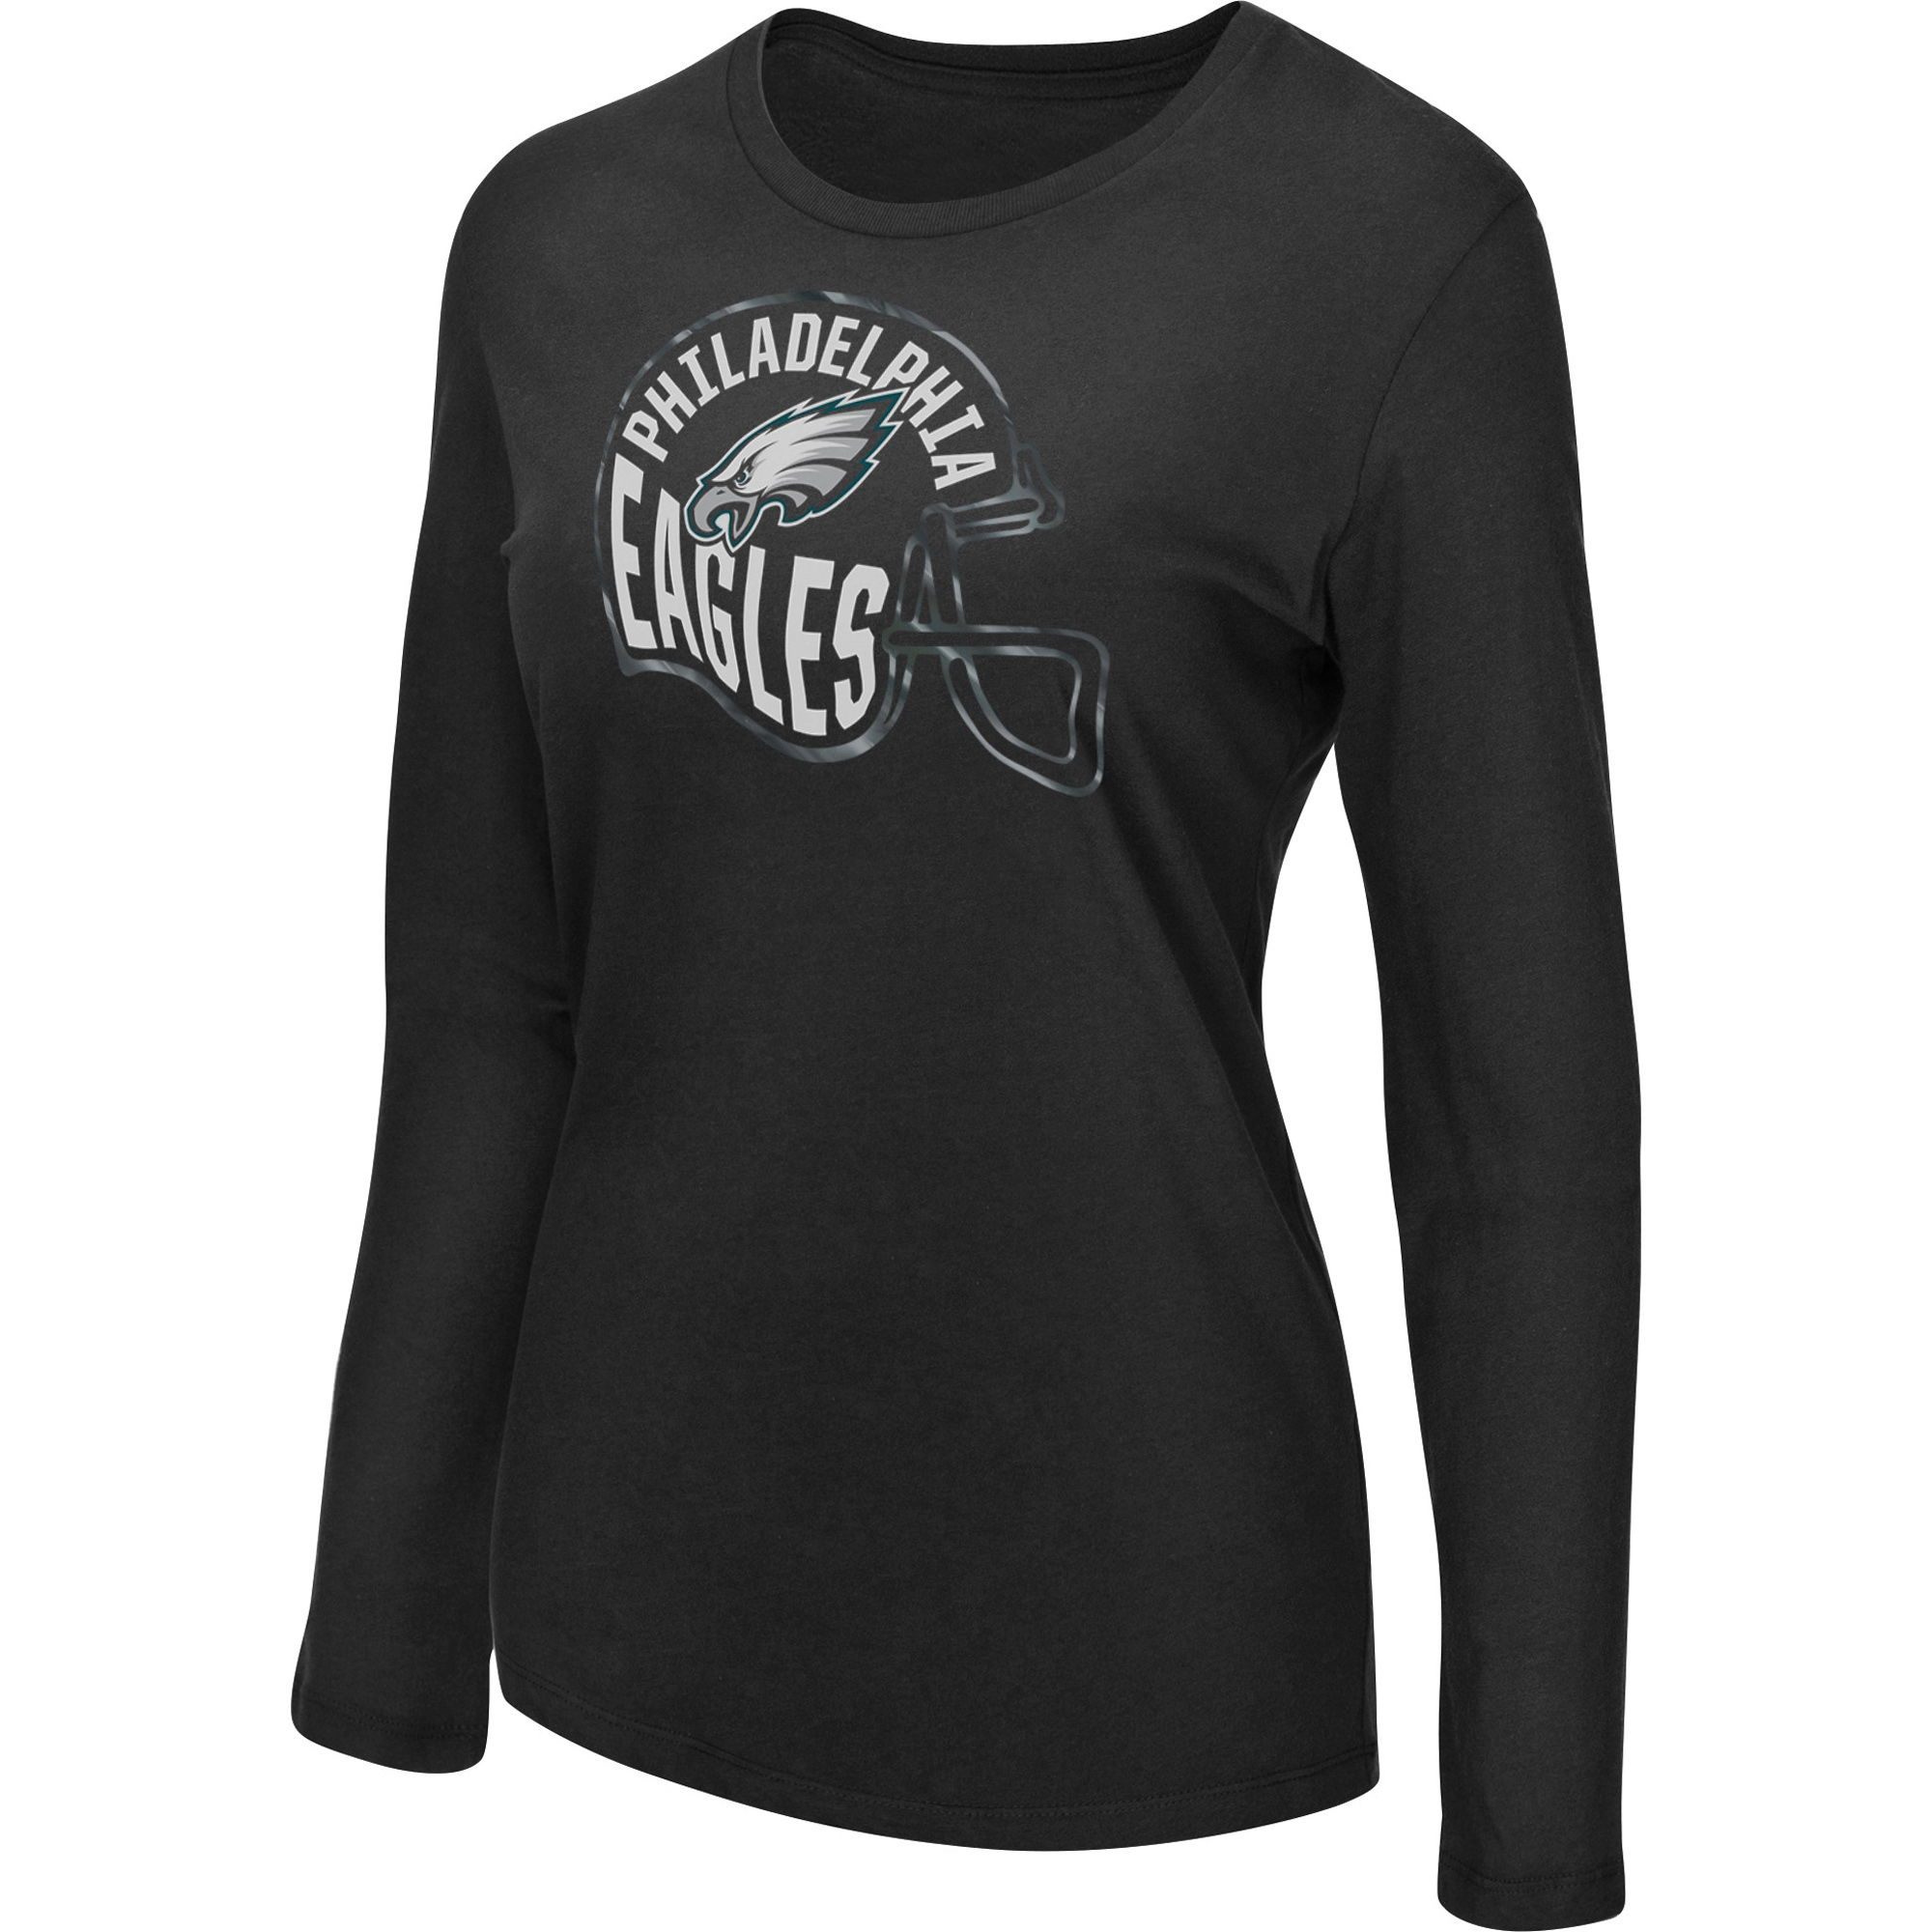 Women's Majestic Black Philadelphia Eagles Turn it Loose Long Sleeve T-Shirt